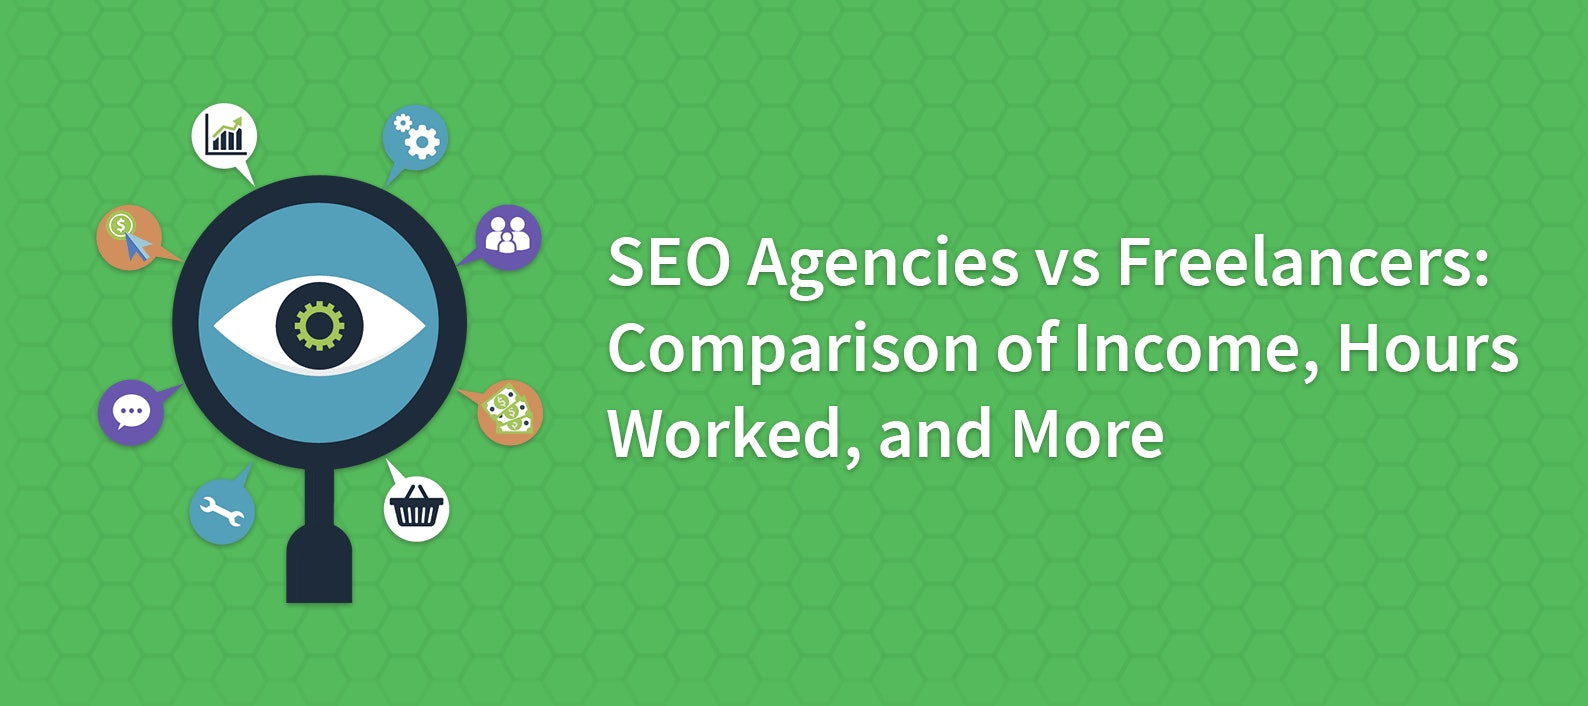 SEO Agencies vs Freelancers: Comparison of Income, Hours Worked, and More